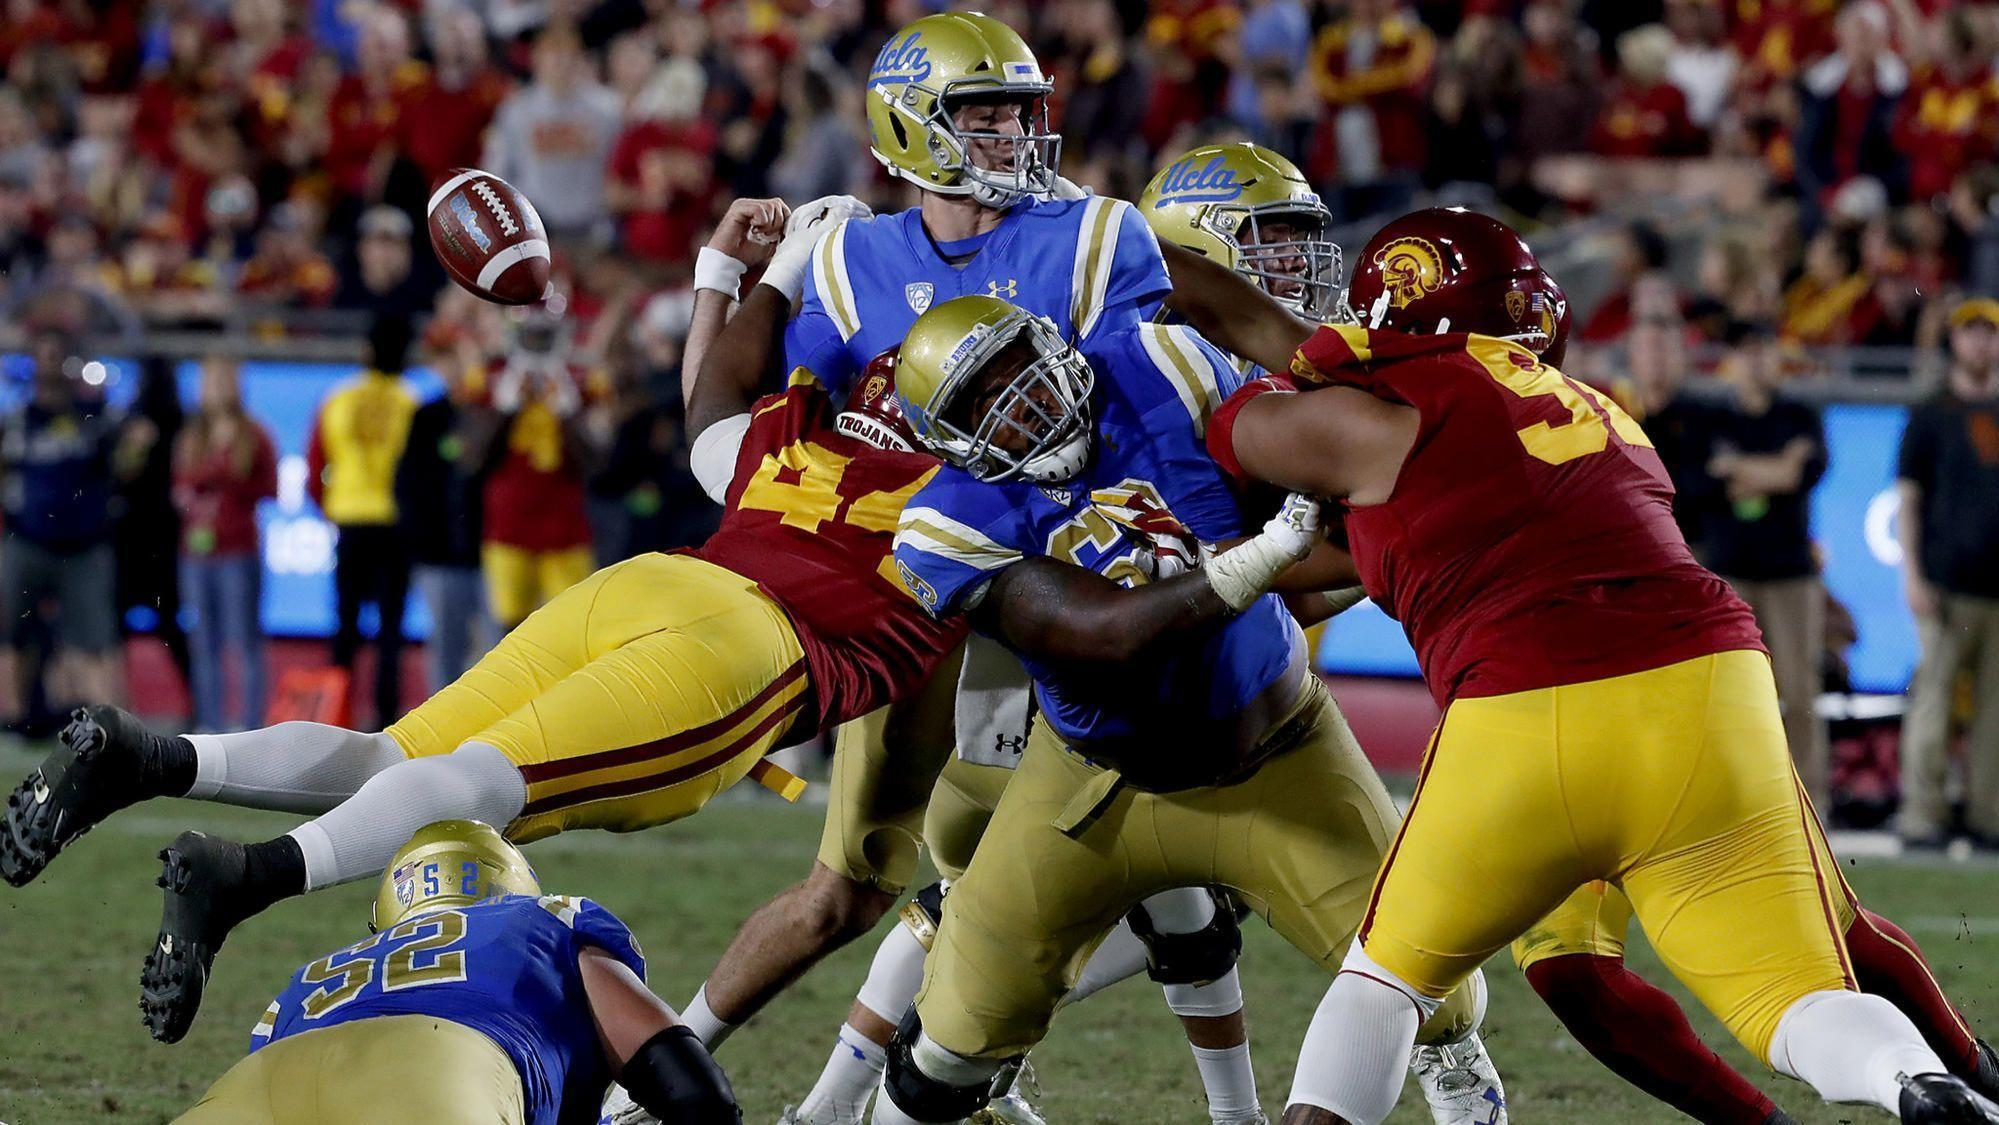 The Times' college football experts make their picks: USC and UCLA will start the season with wins